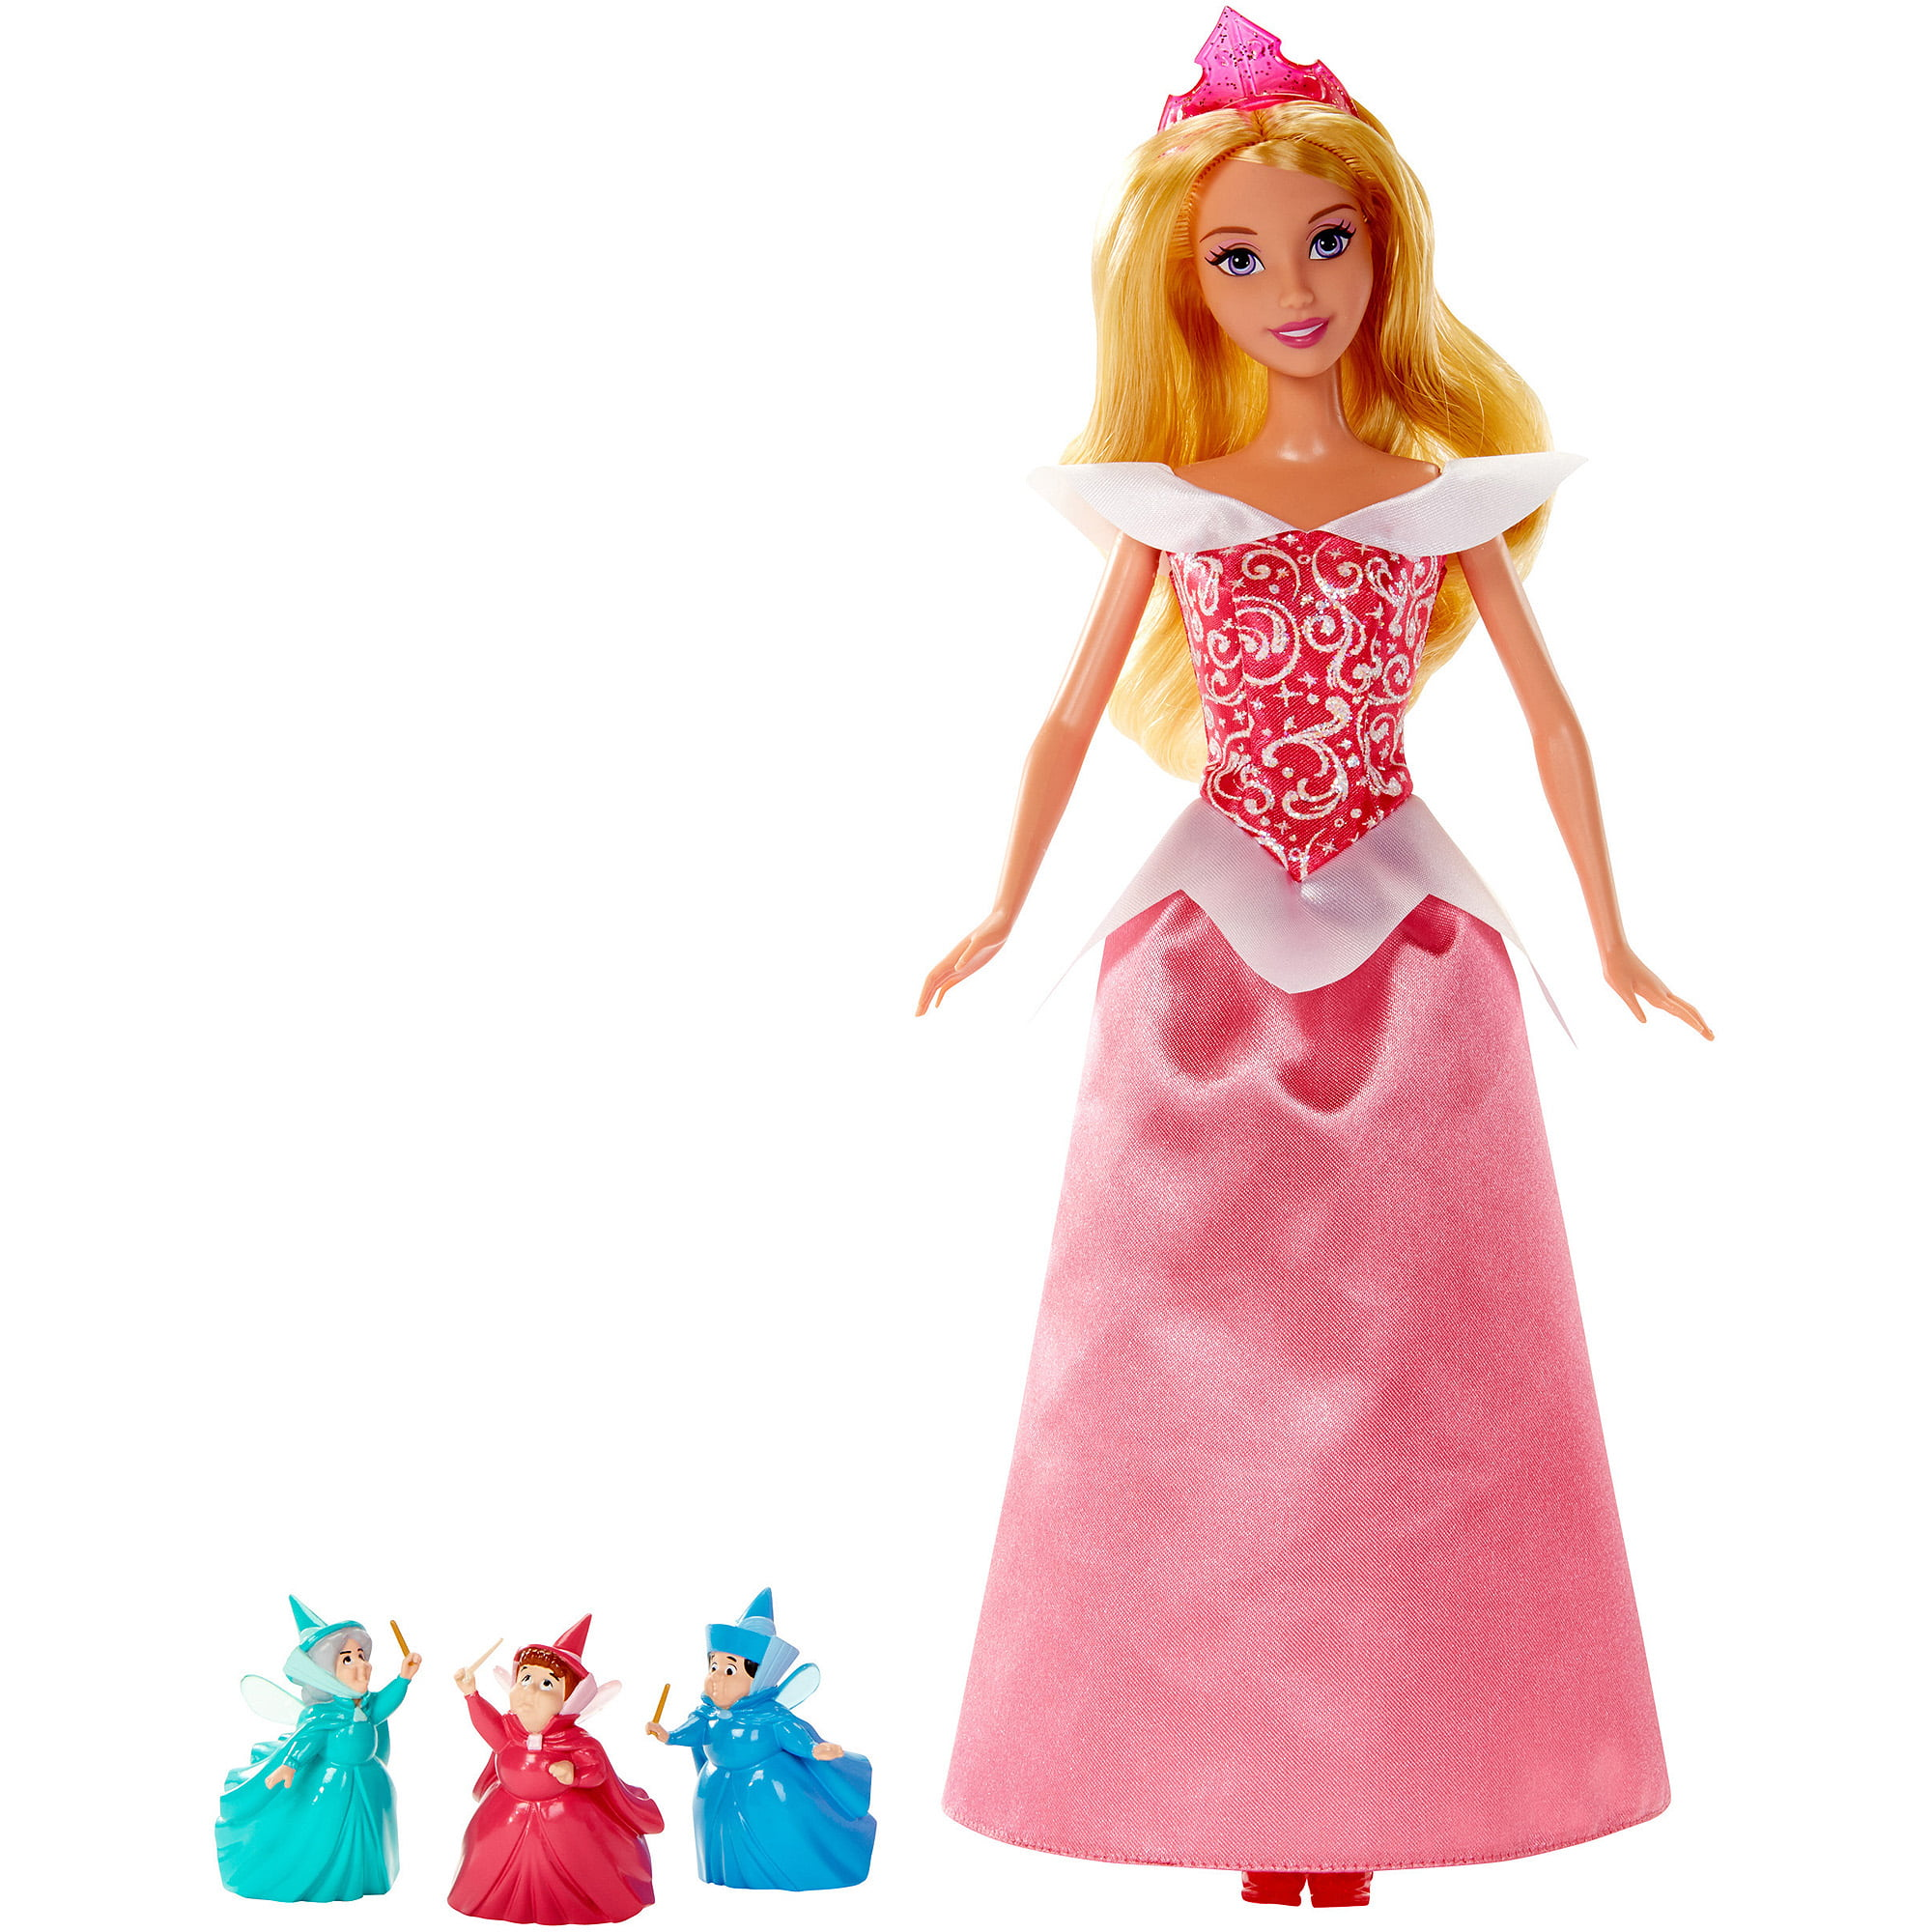 Disney Sleeping Beauty Fairy Gift Set by PT MATTEL INDONESIA